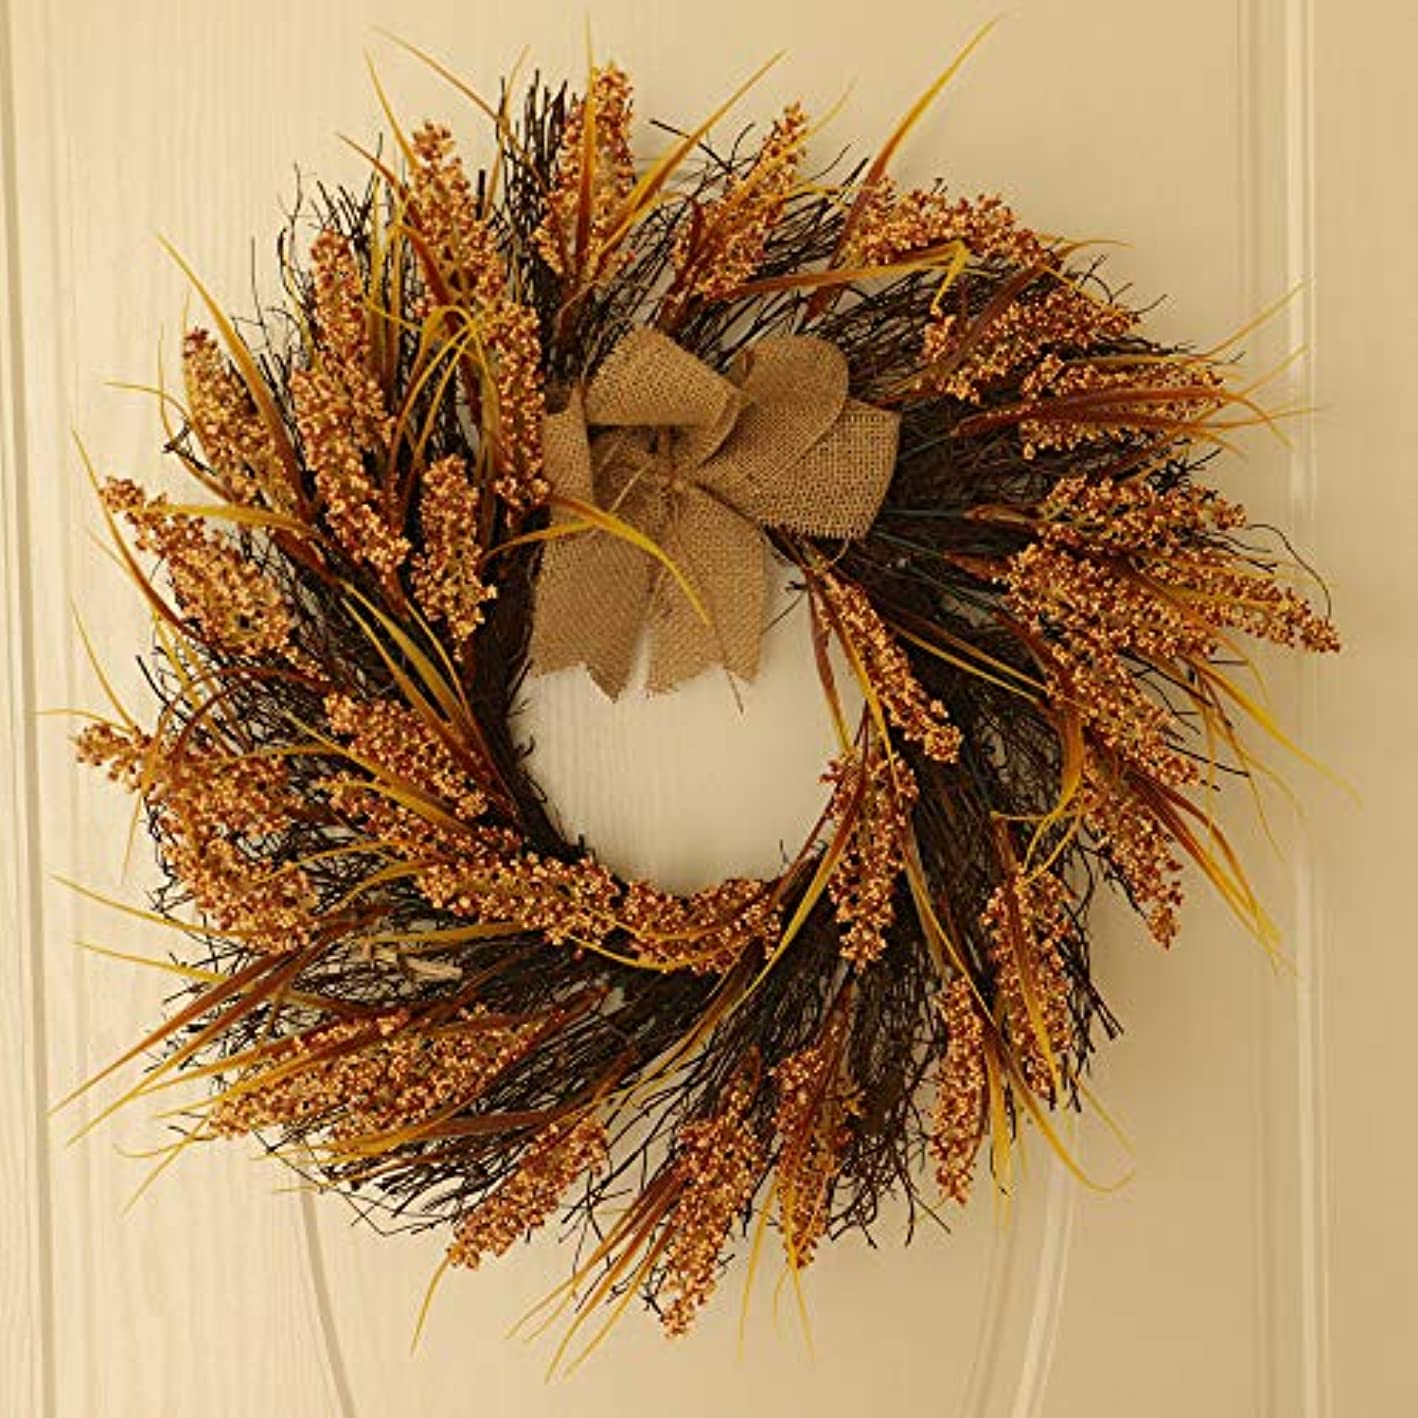 Icocol Decorative Front Door Wreath 24 Inch - Year Round Beautiful Silk Wreath Transforms Front Door Decor, Handcrafted with Care, Storage Gift Box Included (N)